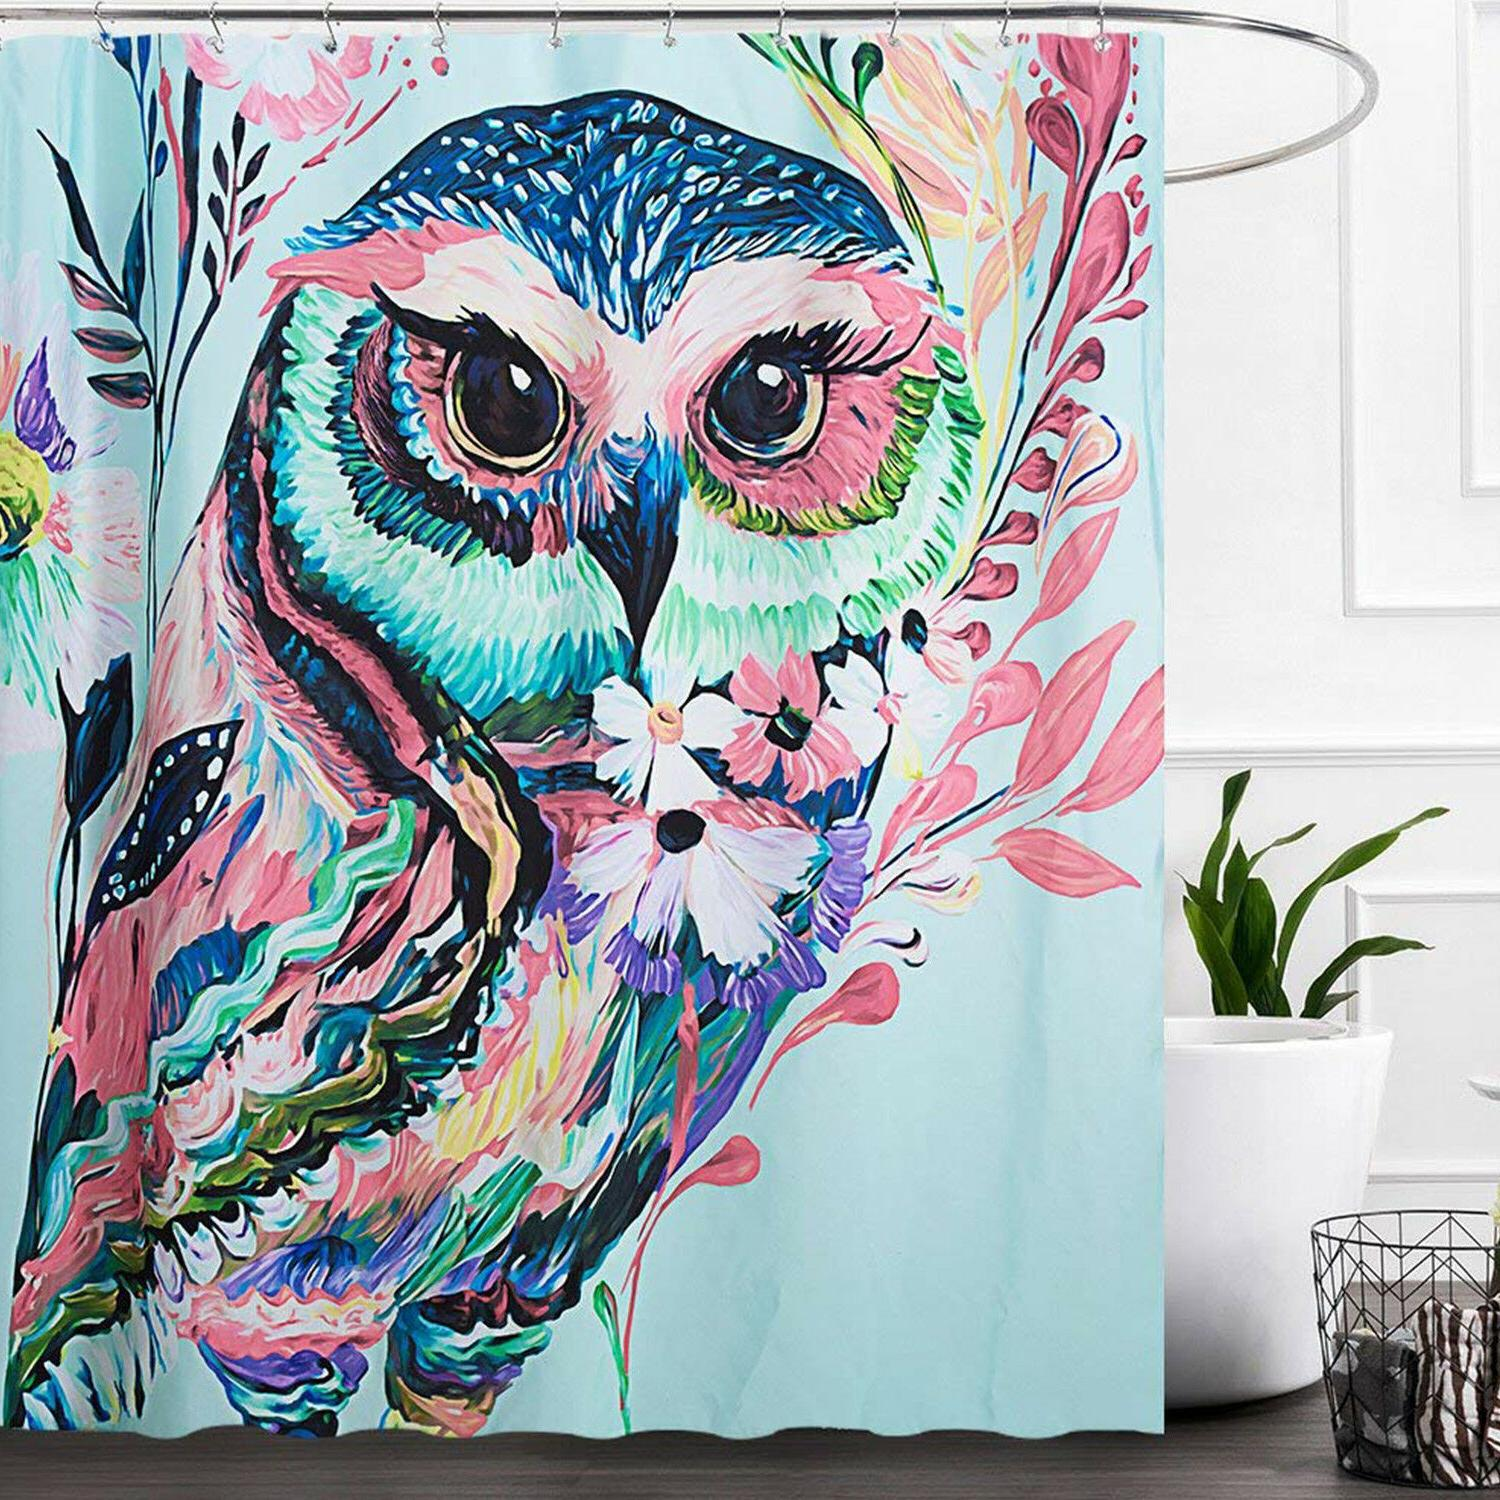 """Fabric Shower Curtain Waterproof Polyester 72""""x72"""" Colorful"""